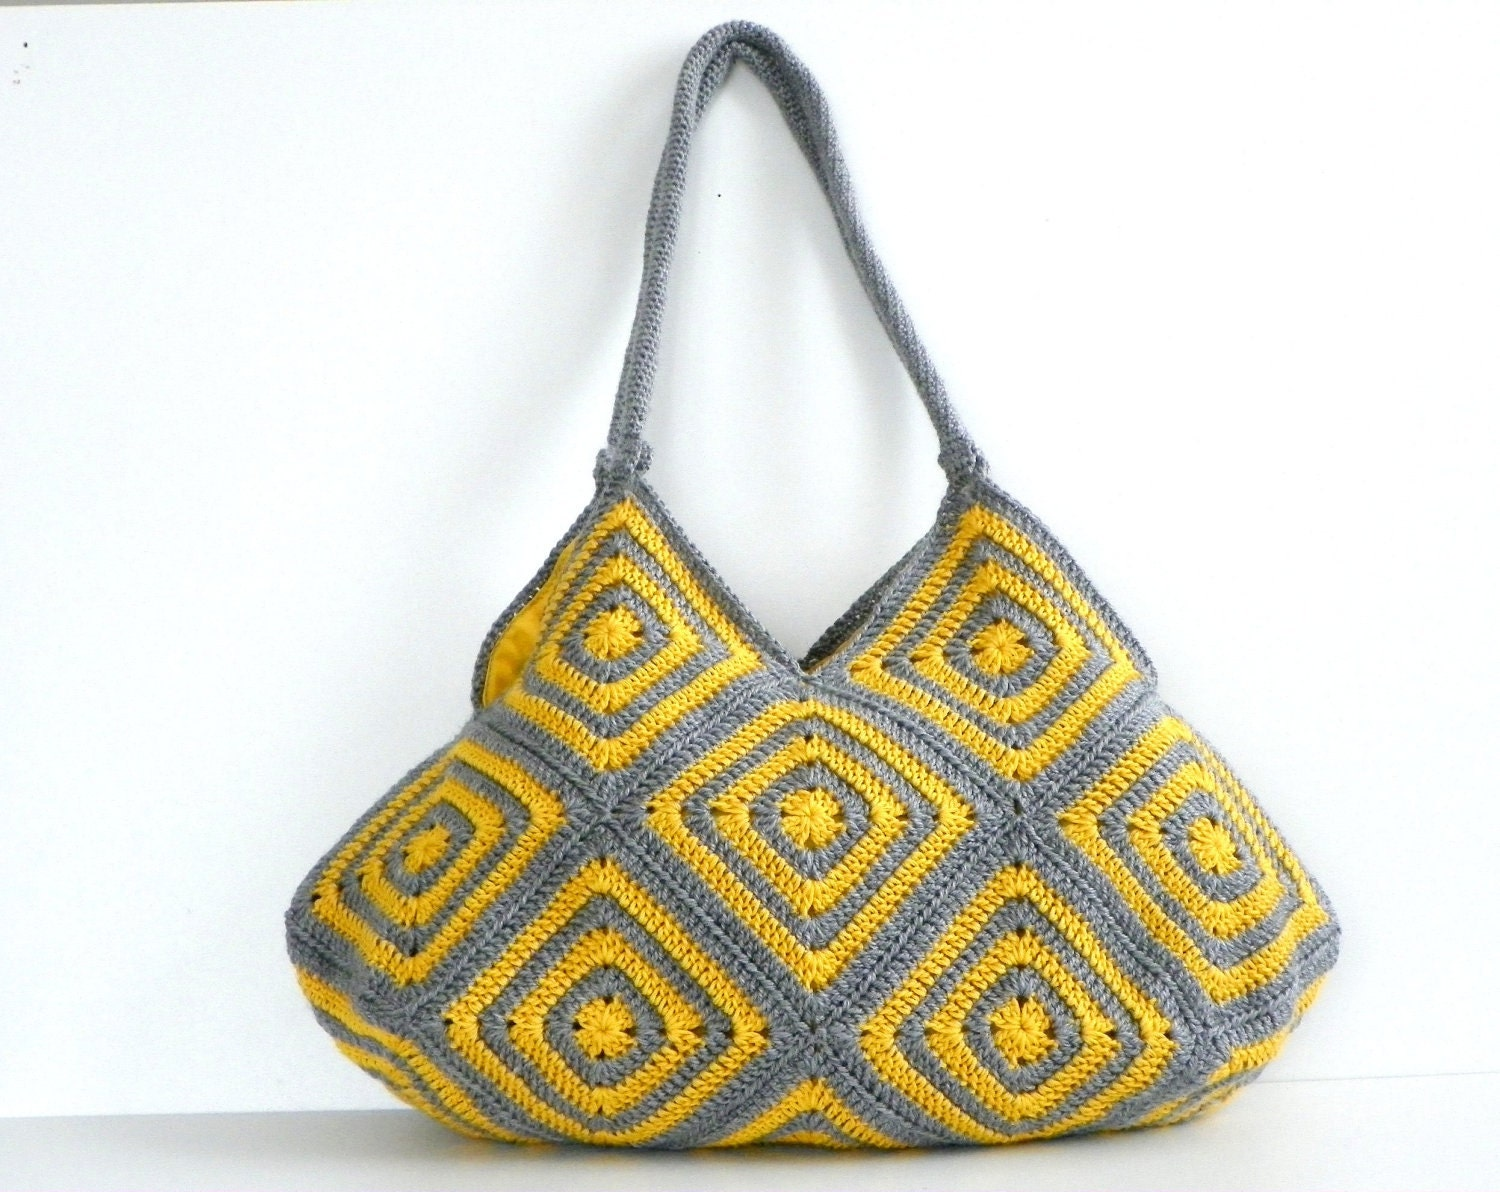 SALE OFF 15% NzLbags New Summer Bag Afghan Crochet Bag by NzLbags